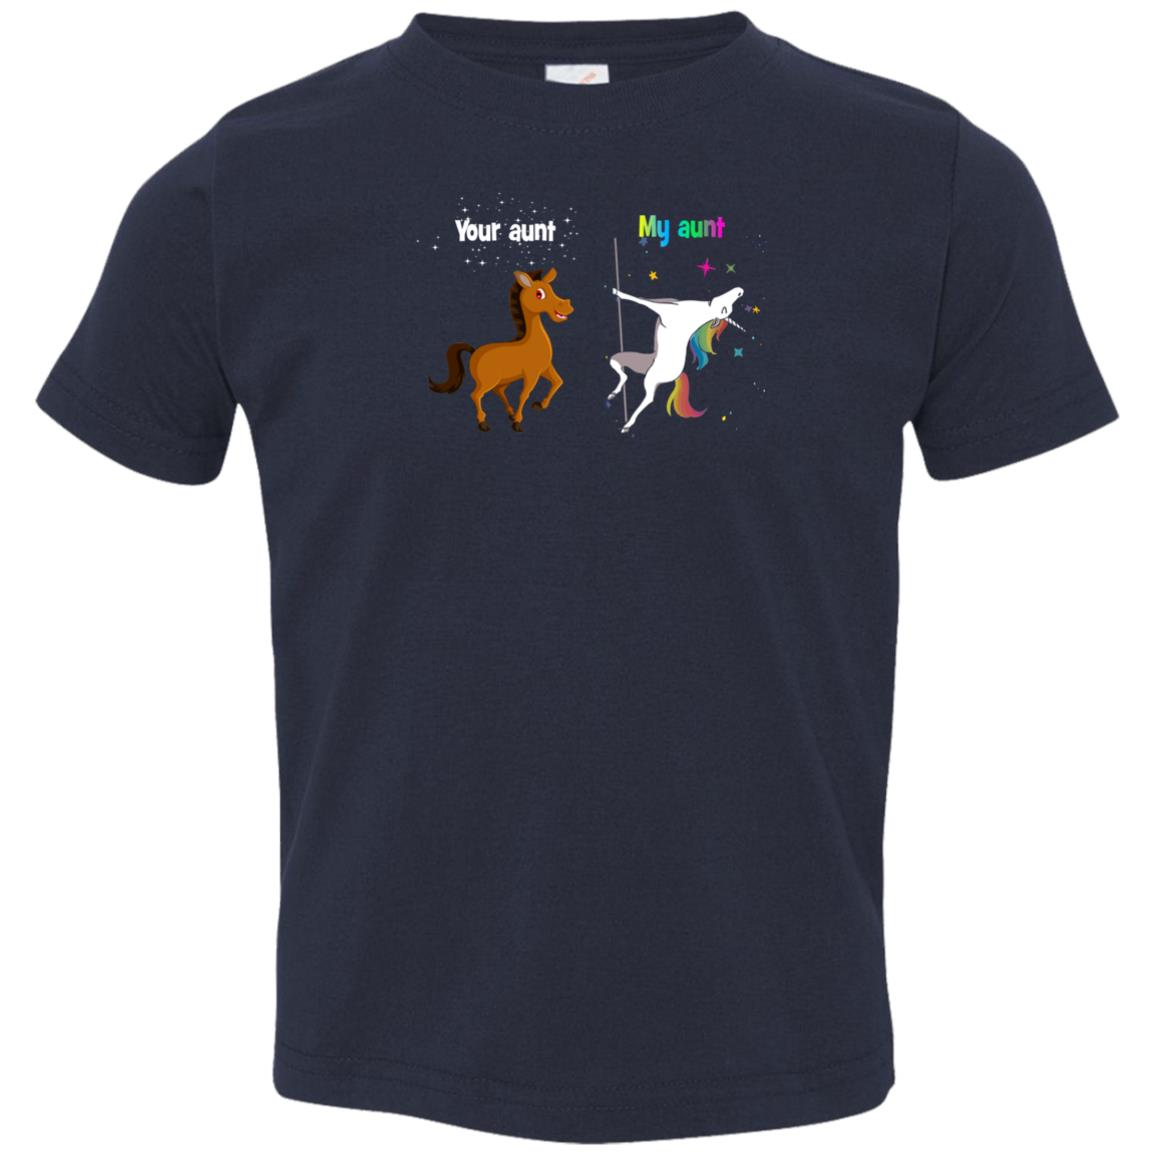 image 954px My aunt unicorn vs your aunt horse youth t shirt